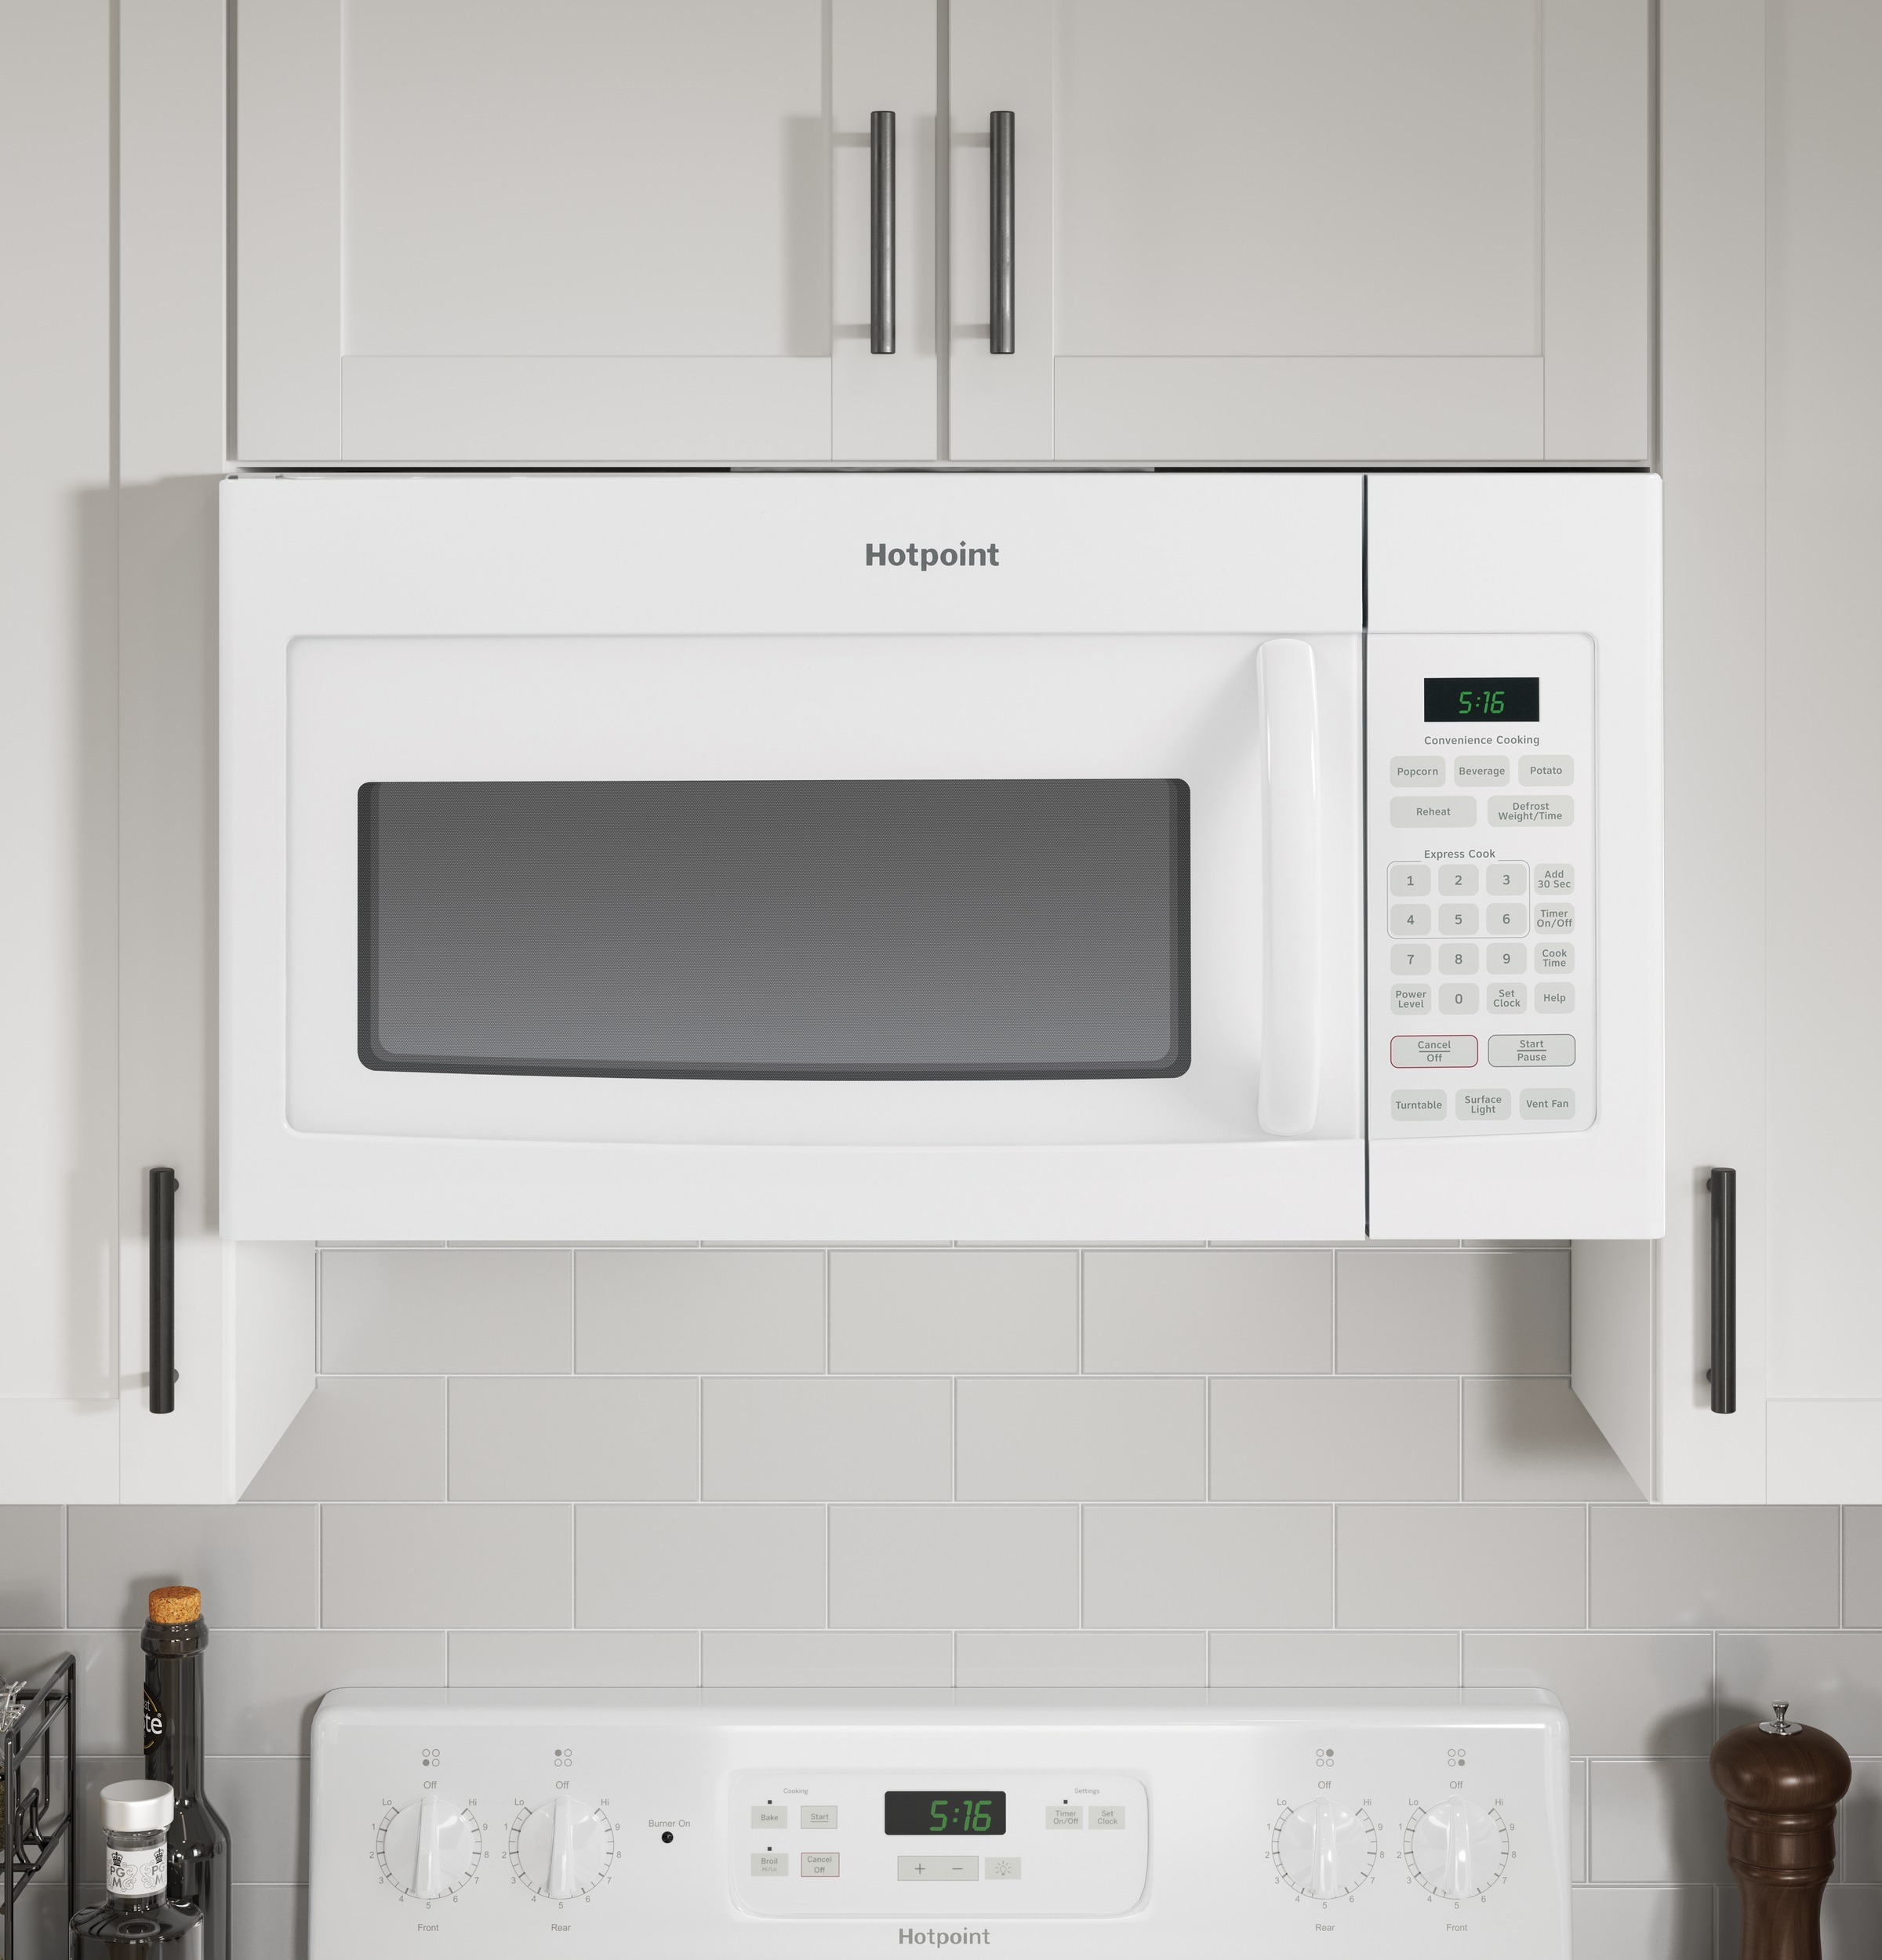 Model: RVM5160DHWW | Hotpoint Hotpoint® 1.6 Cu. Ft. Over-the-Range Microwave Oven